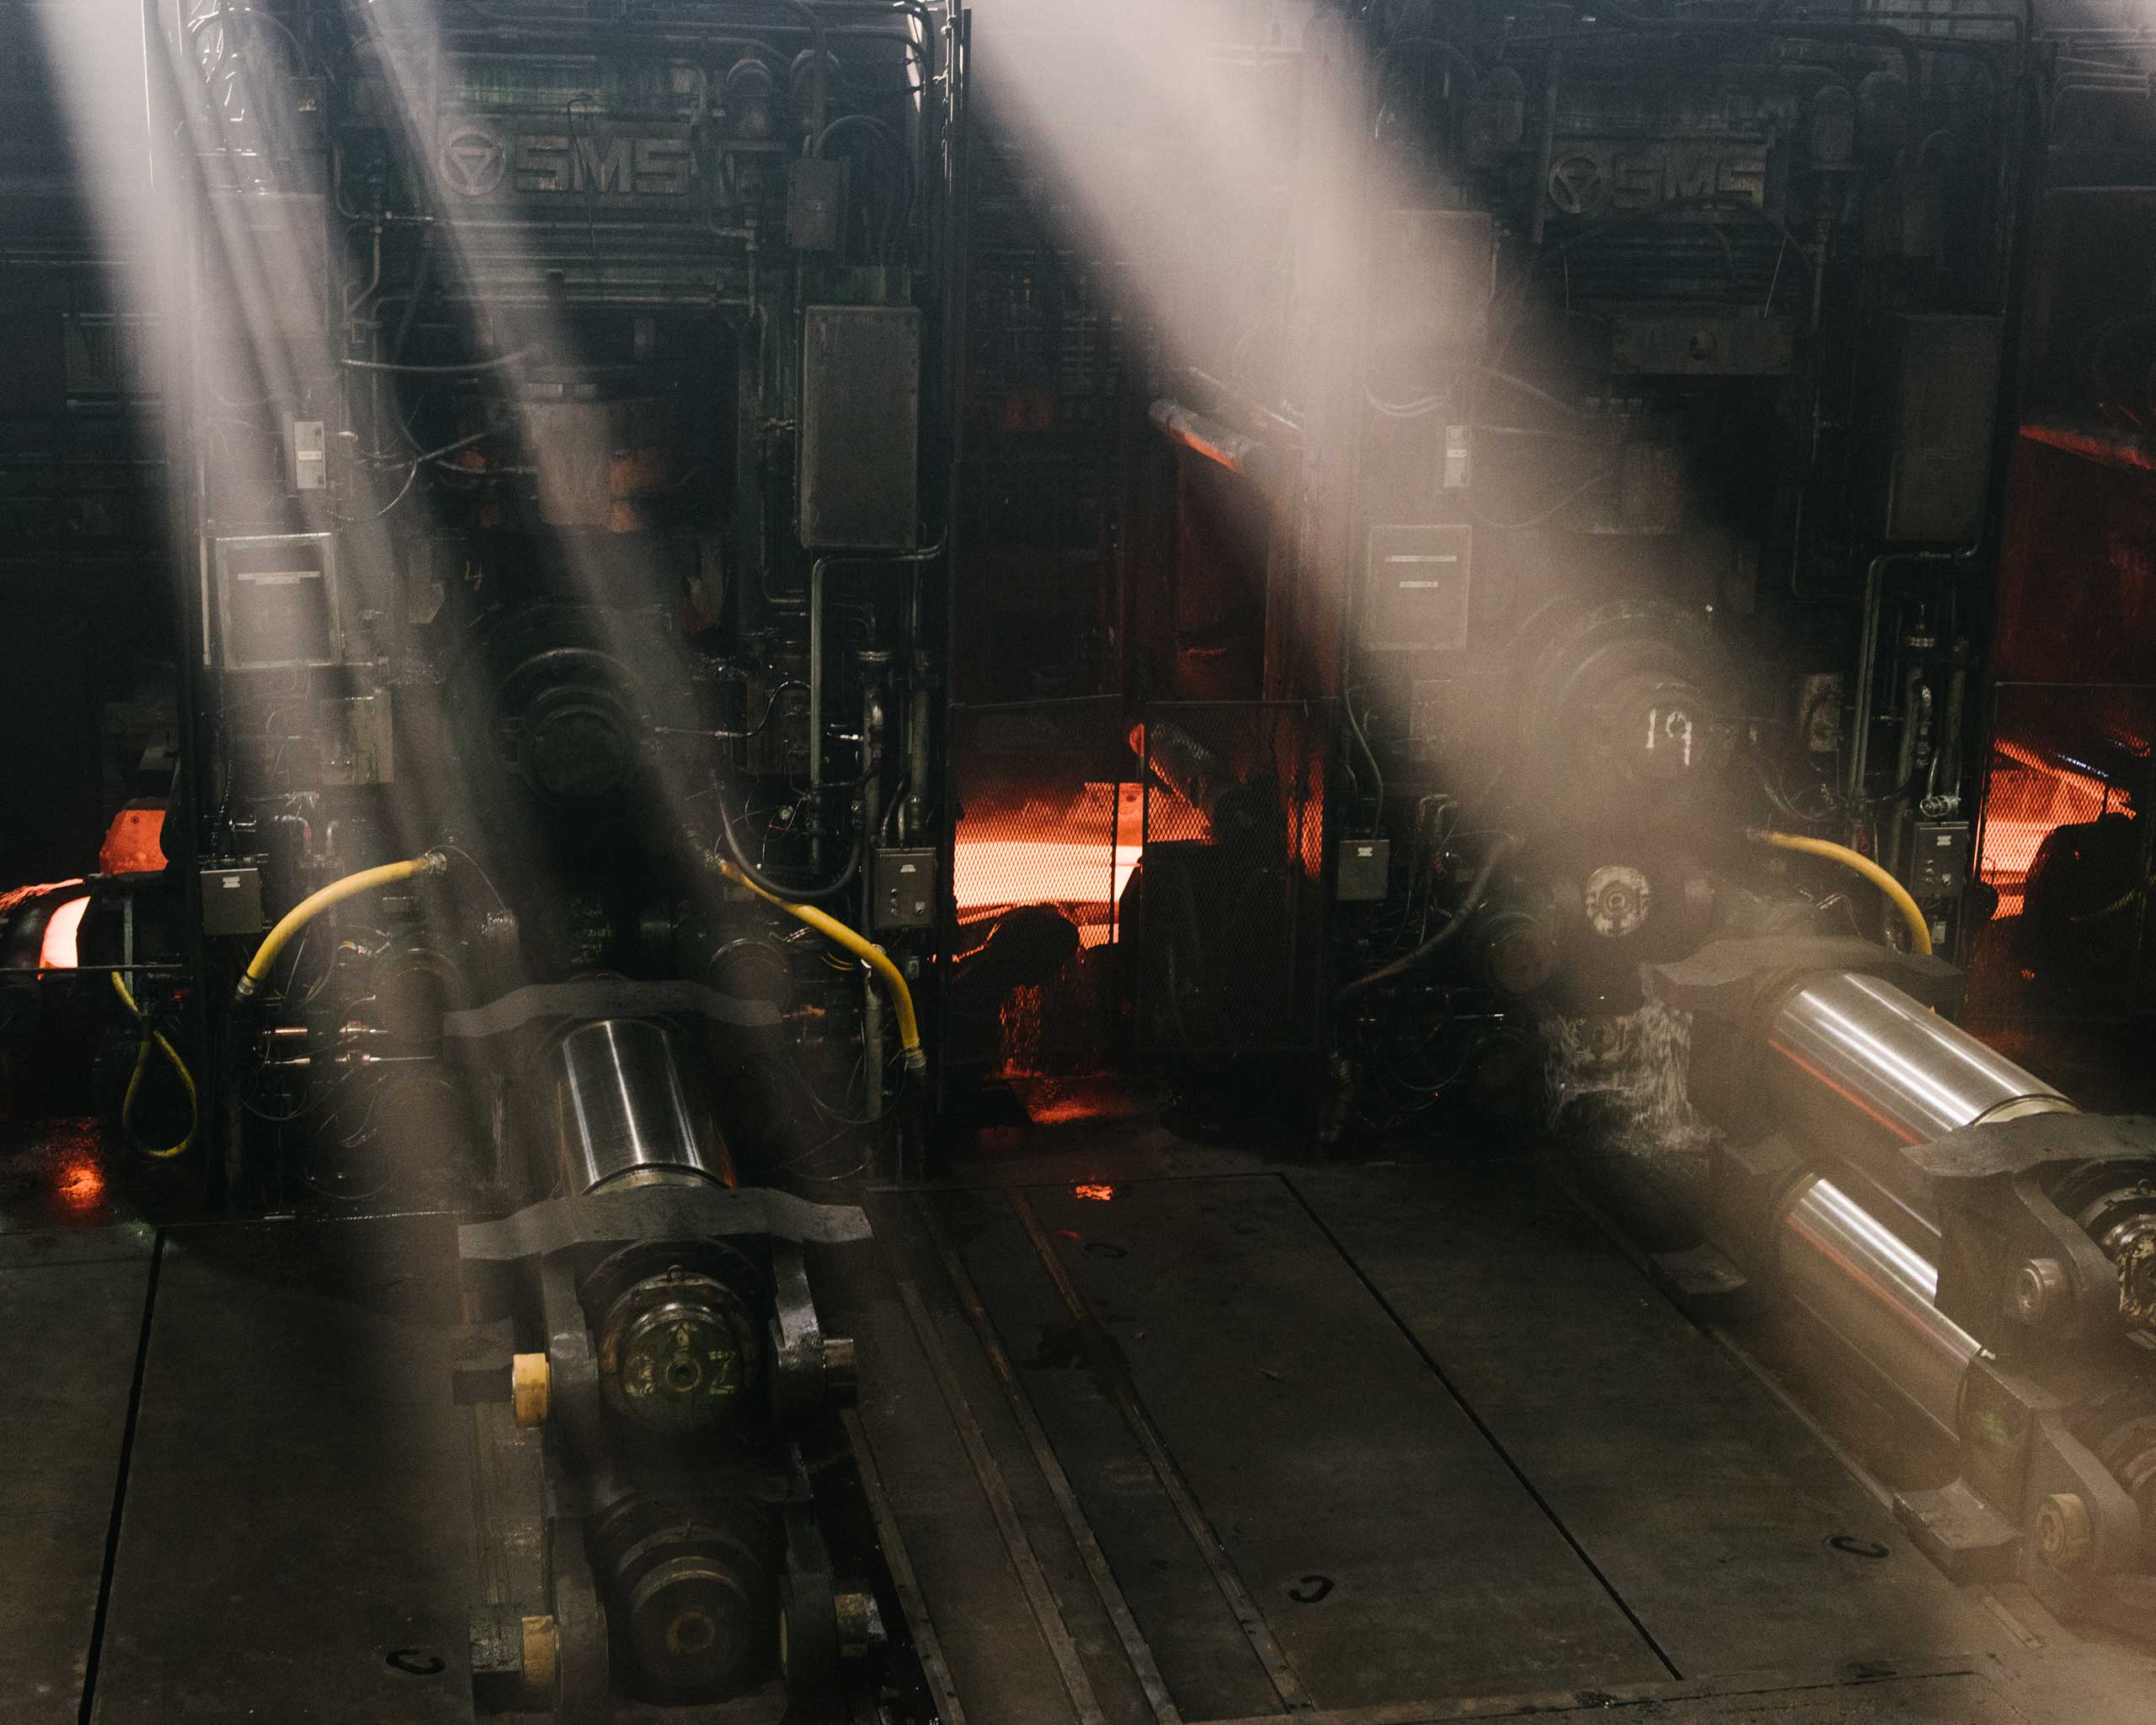 In the rolling mill, two-inch thick, red-hot slabs of steel are rapidly pounded into sheets thinner than cardboard, Crawfordsville, Ind. on Aug. 25, 2014.